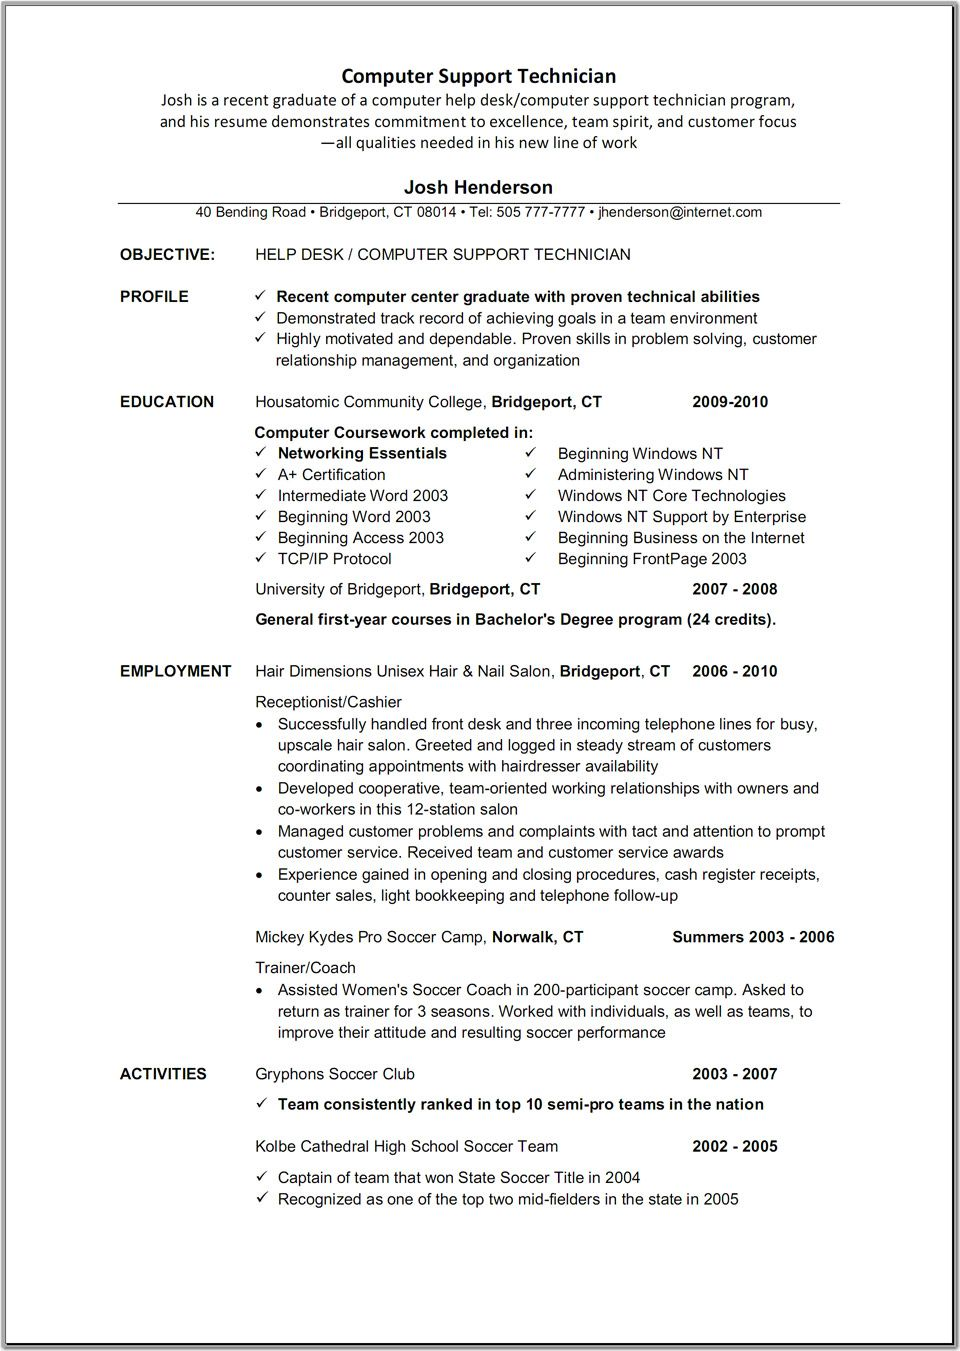 Best Pharmacist Resume Sample Ideas   Http://www.jobresume.website/best  Pharmacist Resume Sample Ideas/